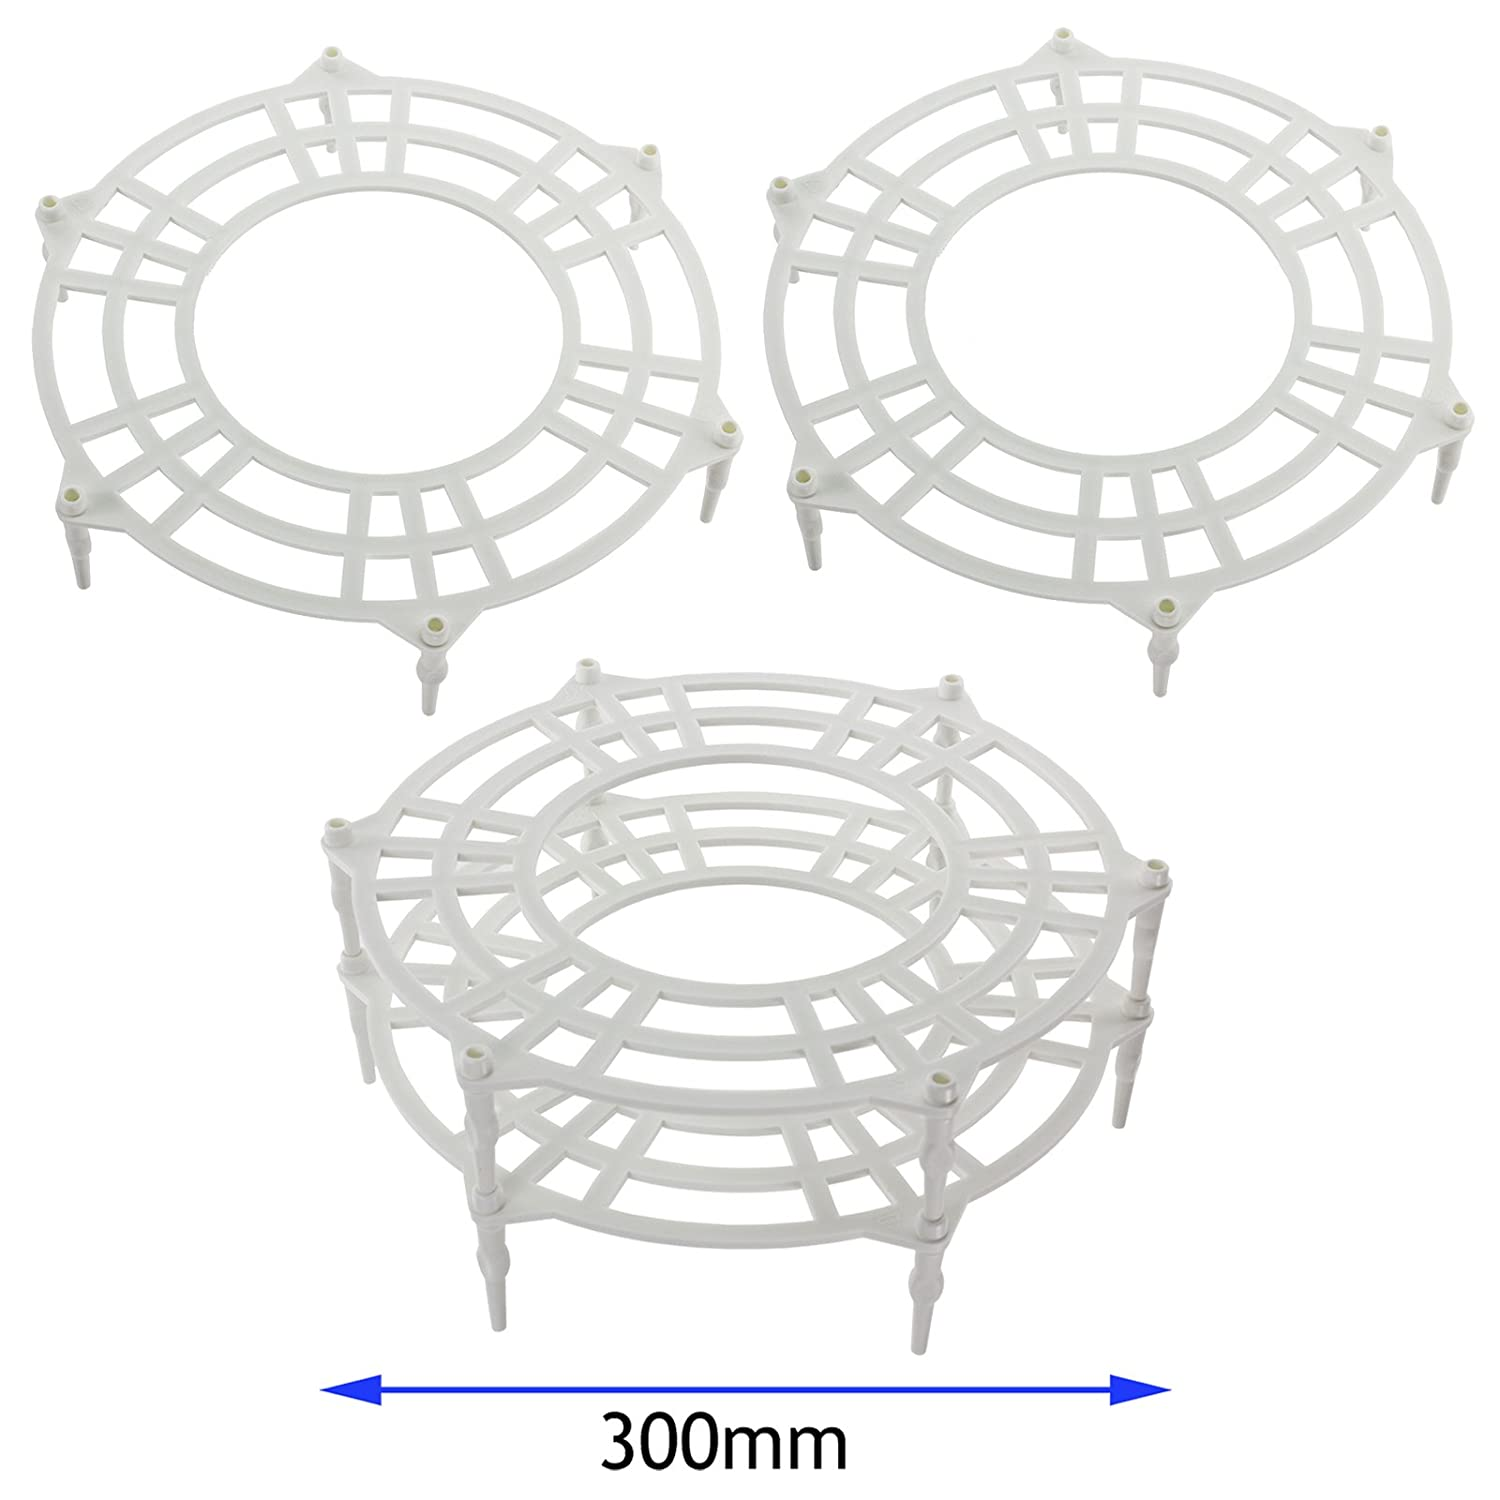 SPARES2GO 300mm Single + Double Tier Plate Stand Racks for LG Microwave Ovens (Pack of 2)